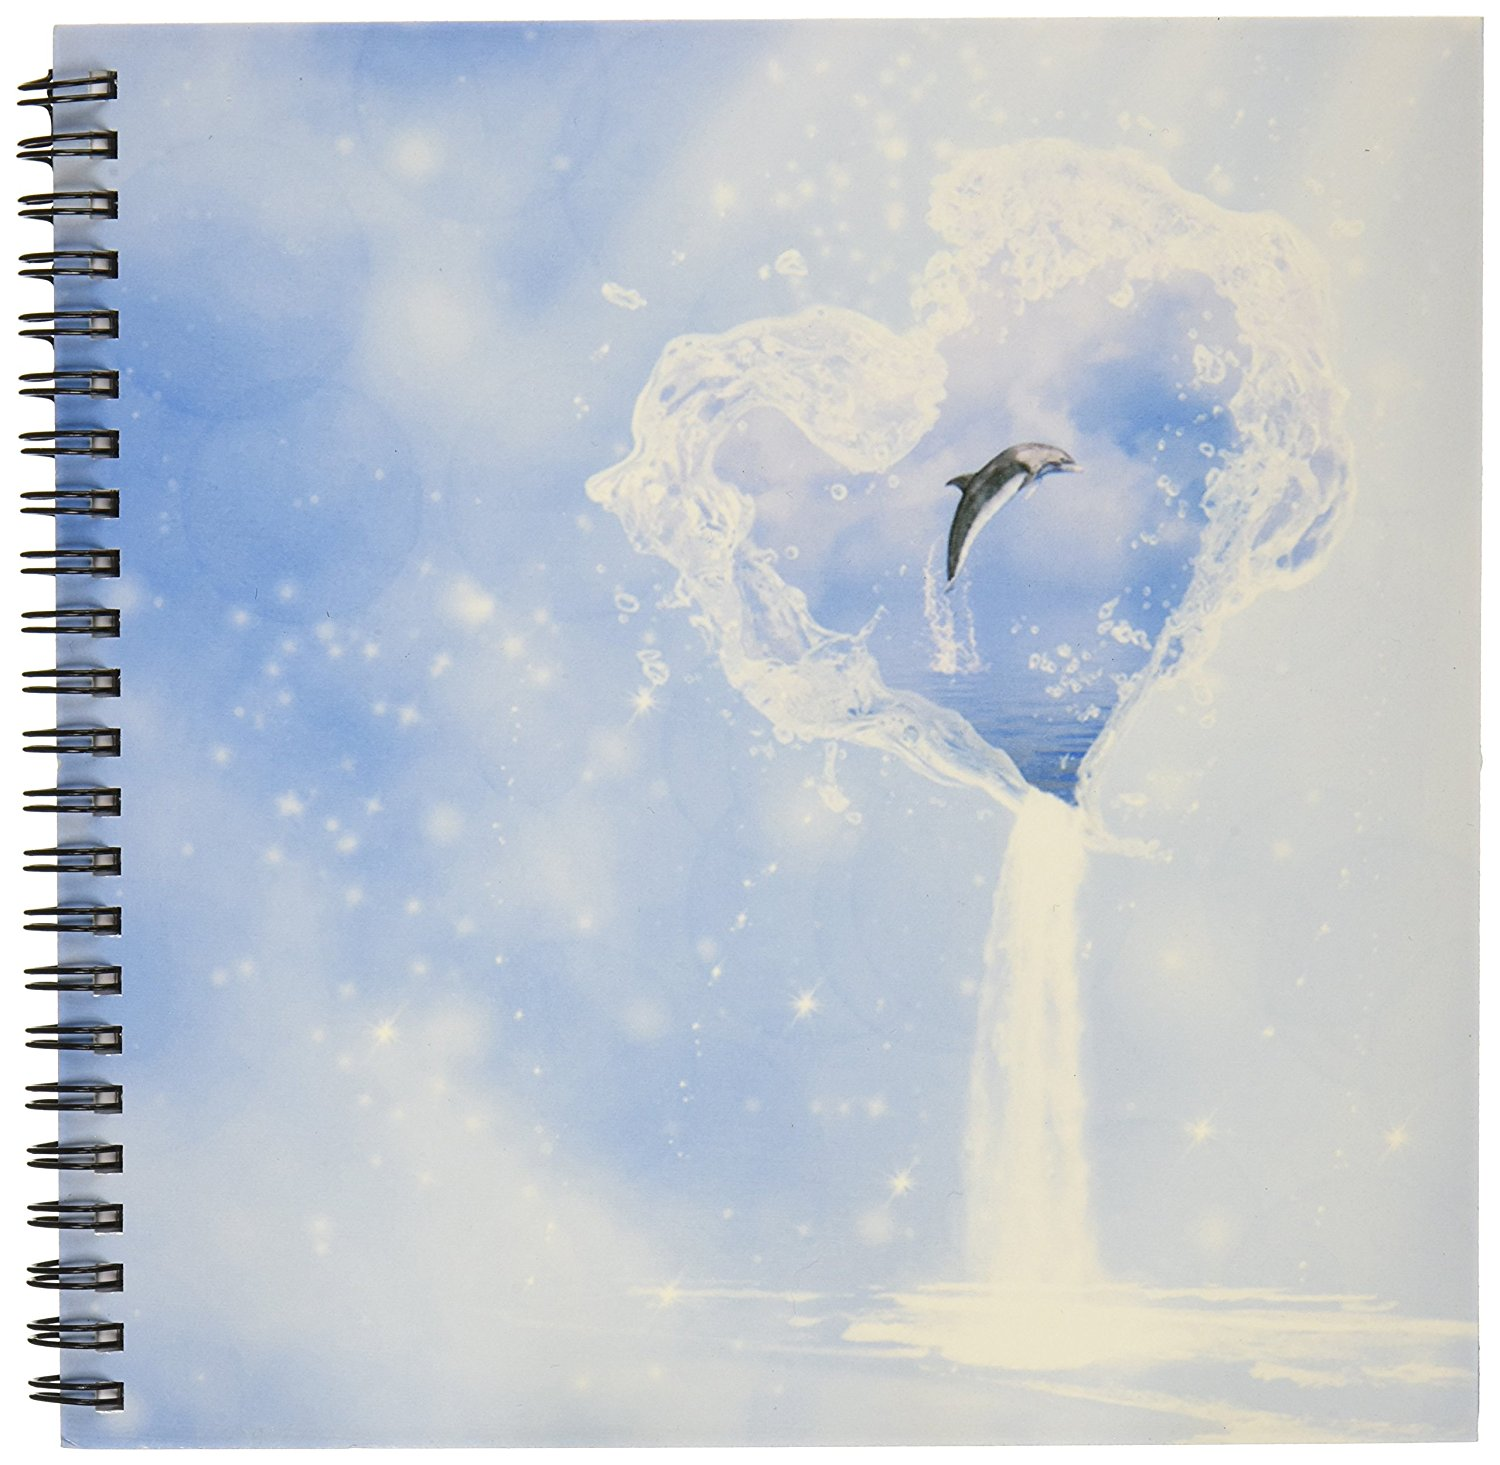 3dRose db_172223_1 Heart Ocean Waterfall Dolphin Blue Fantasy-Drawing Book, 8 by 8-Inch